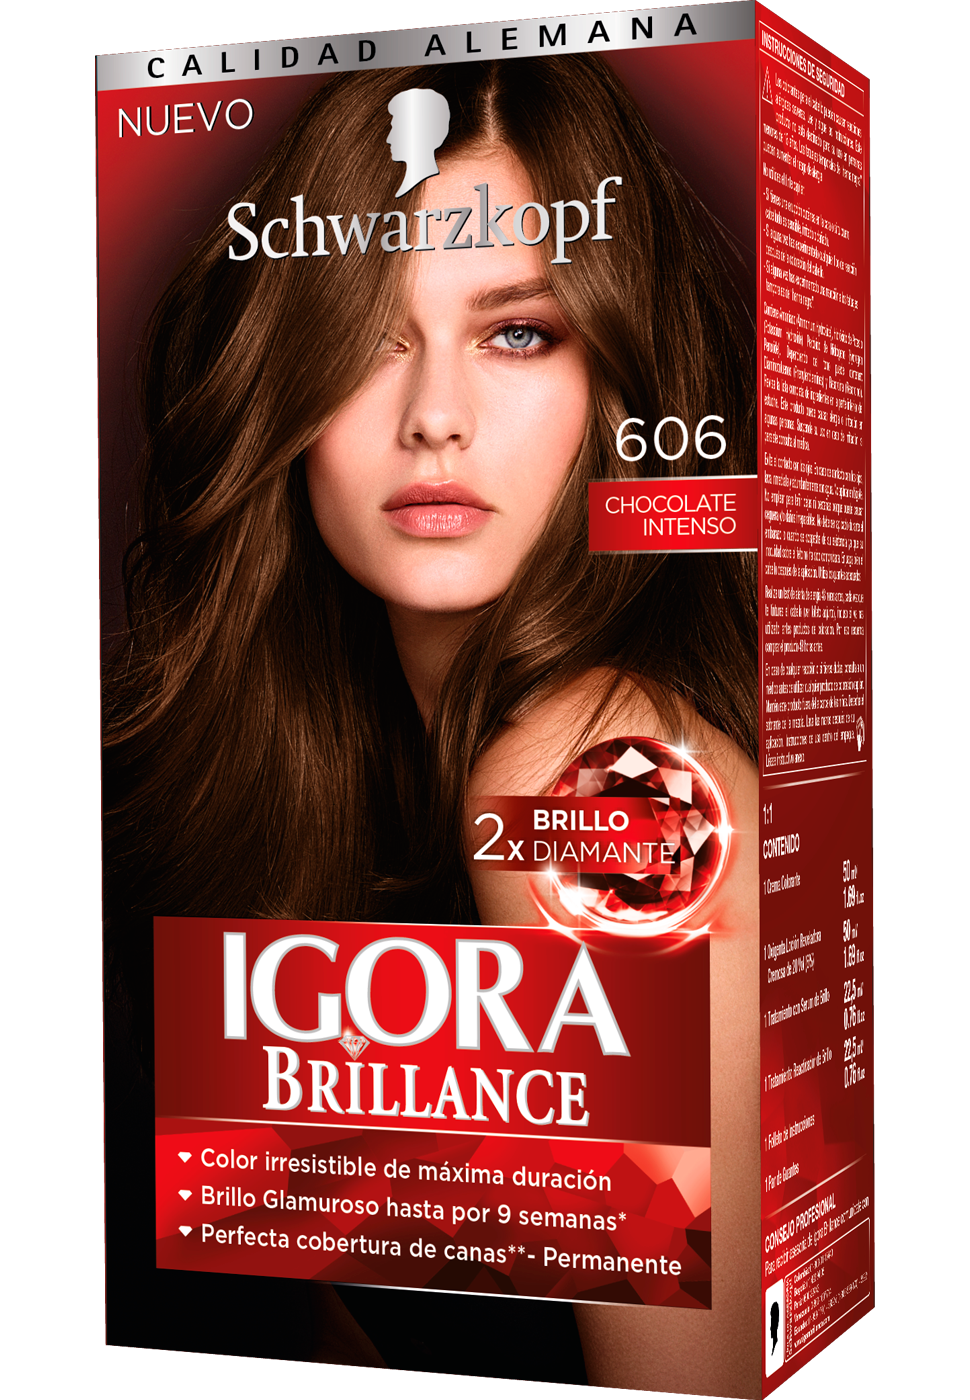 Igora brillance 606 chocolate intenso